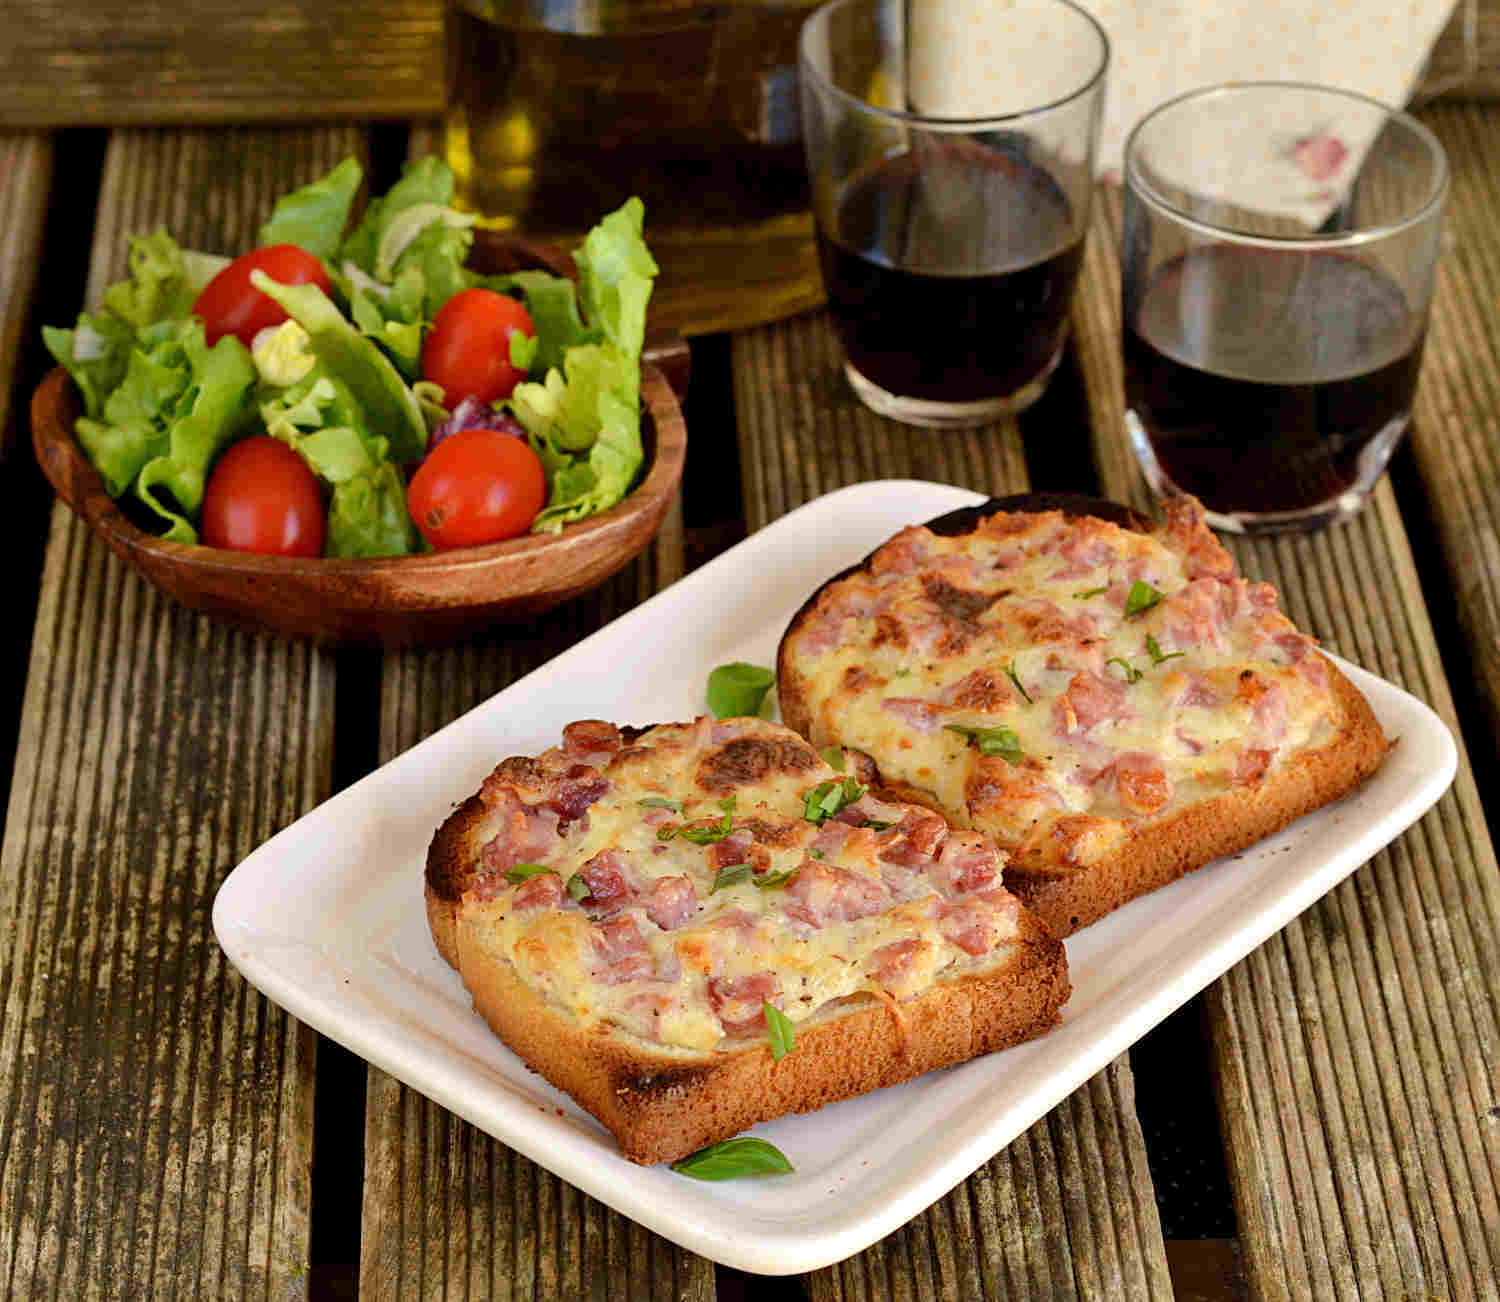 Bodytrim-Toasted-Open-Sandwich-Weight-loss-Recipe-Image